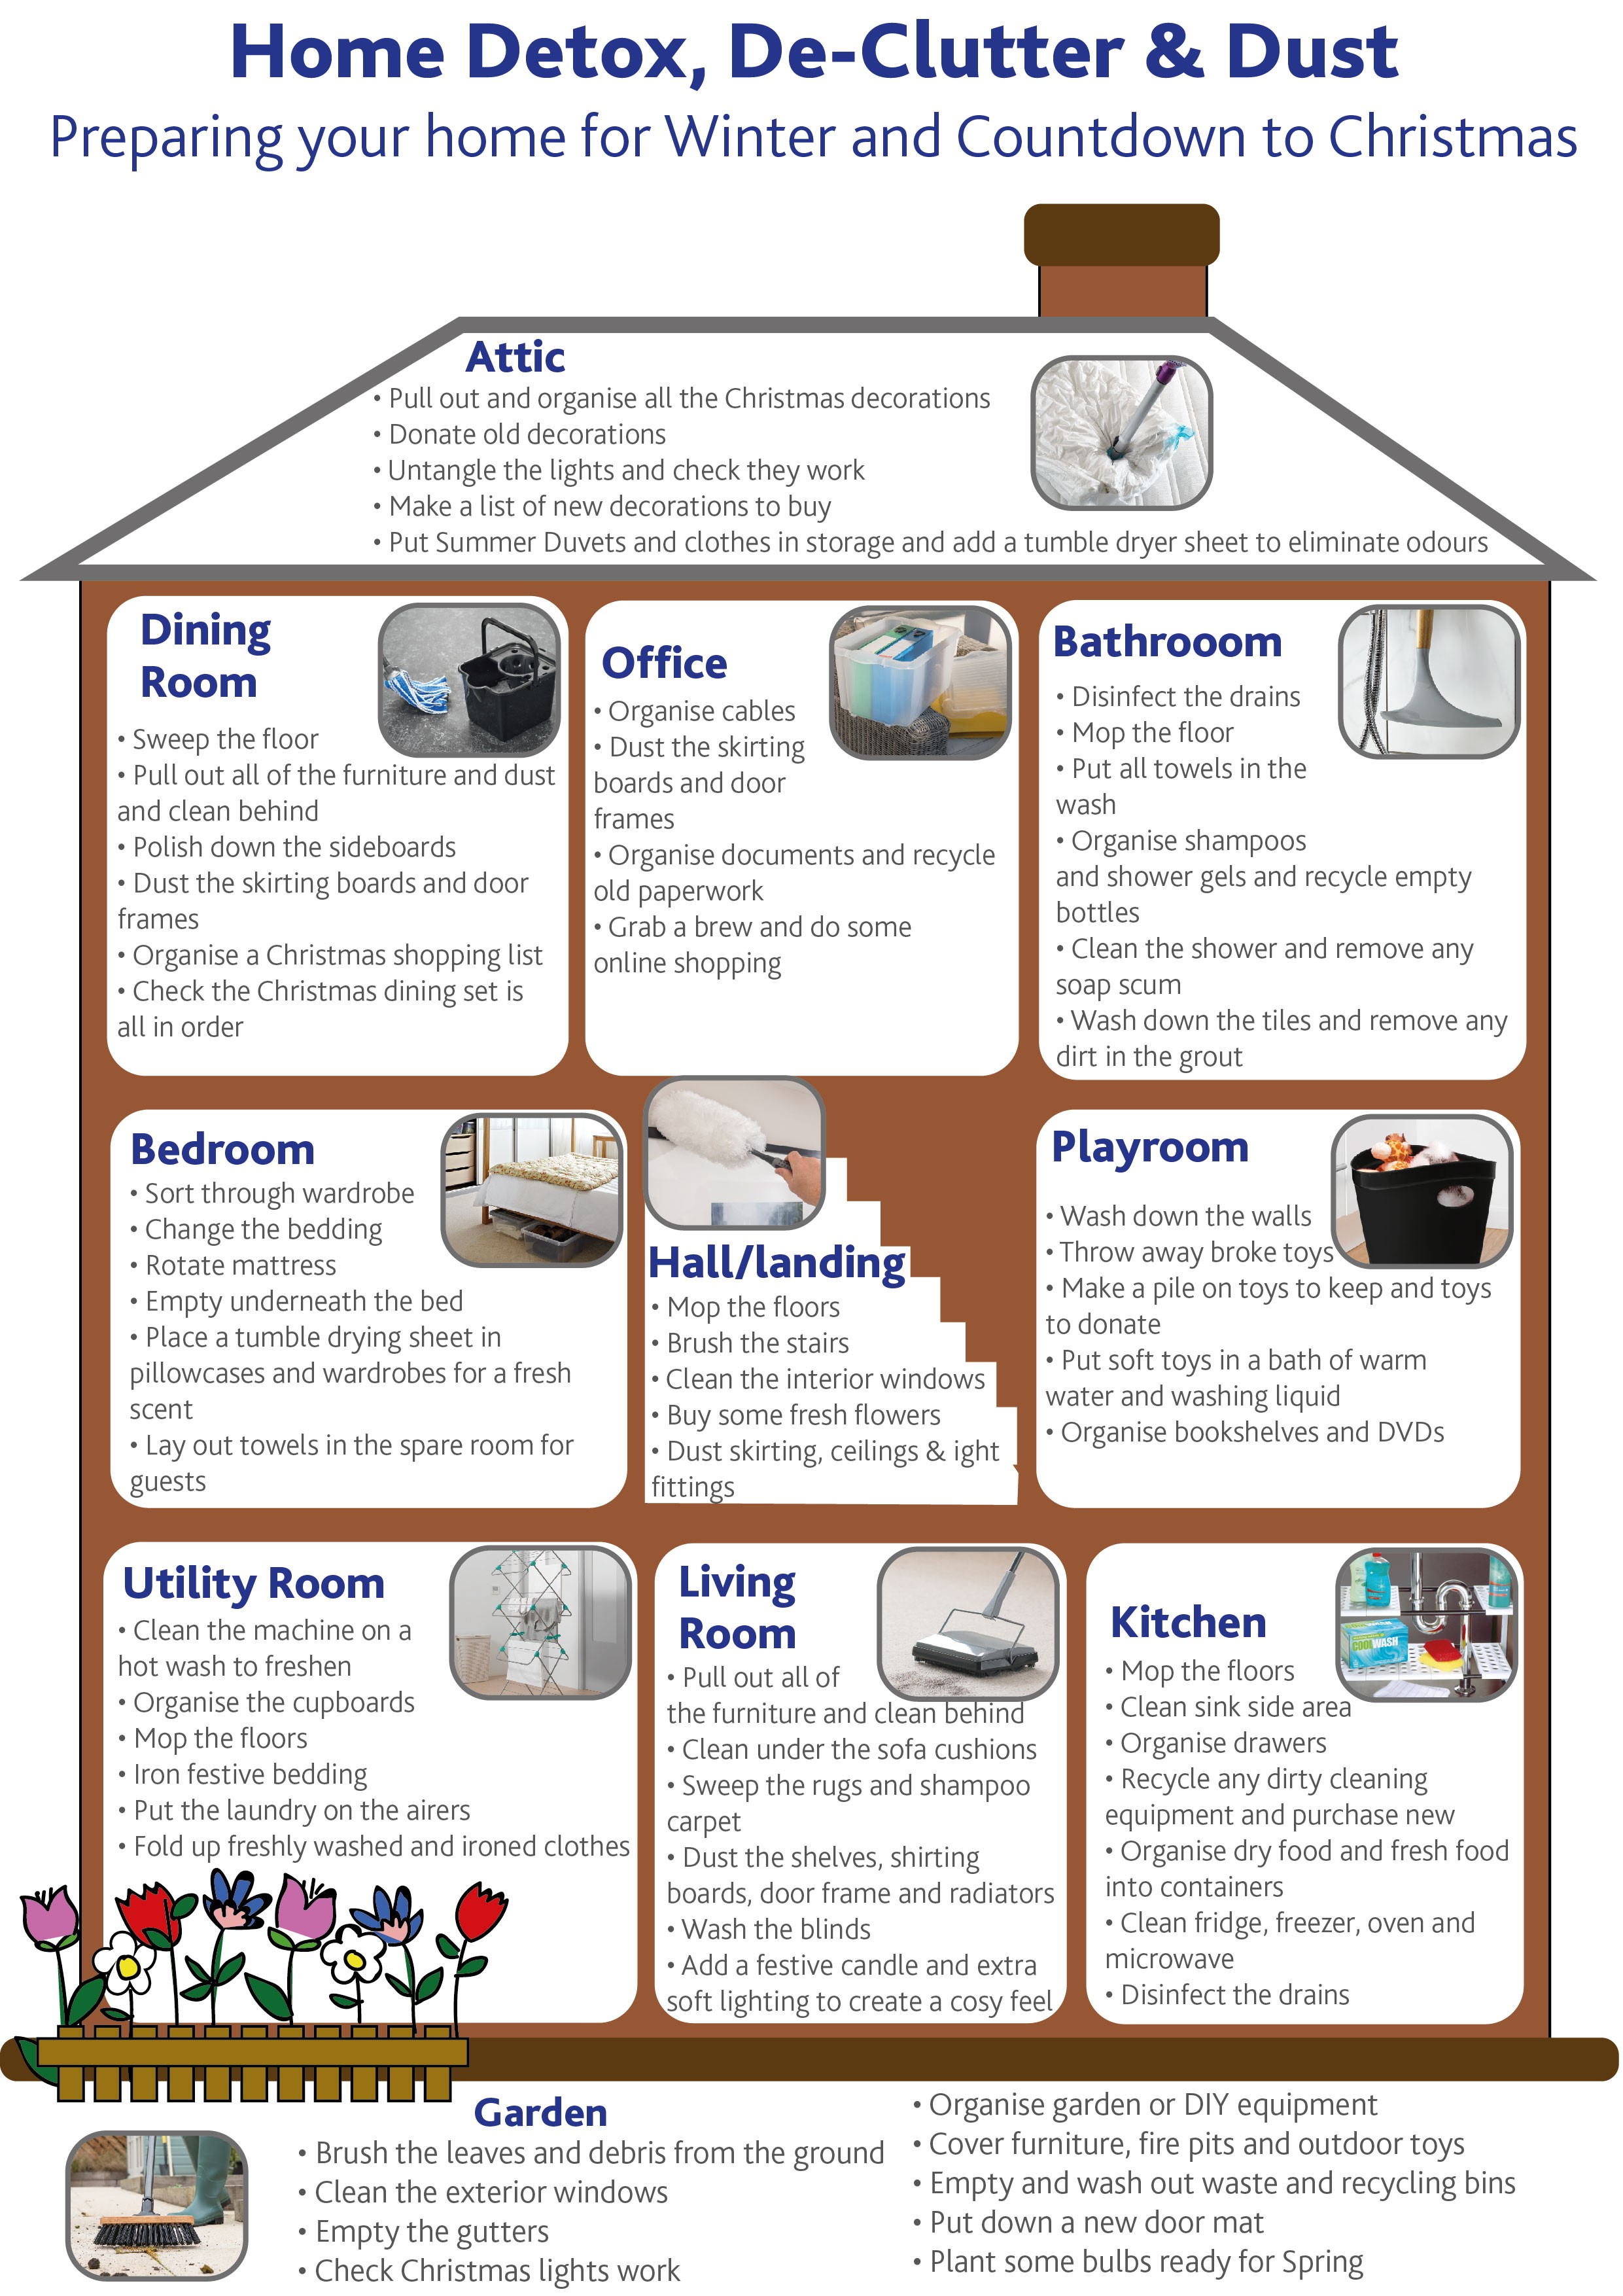 preparing your home for winter and Christmas